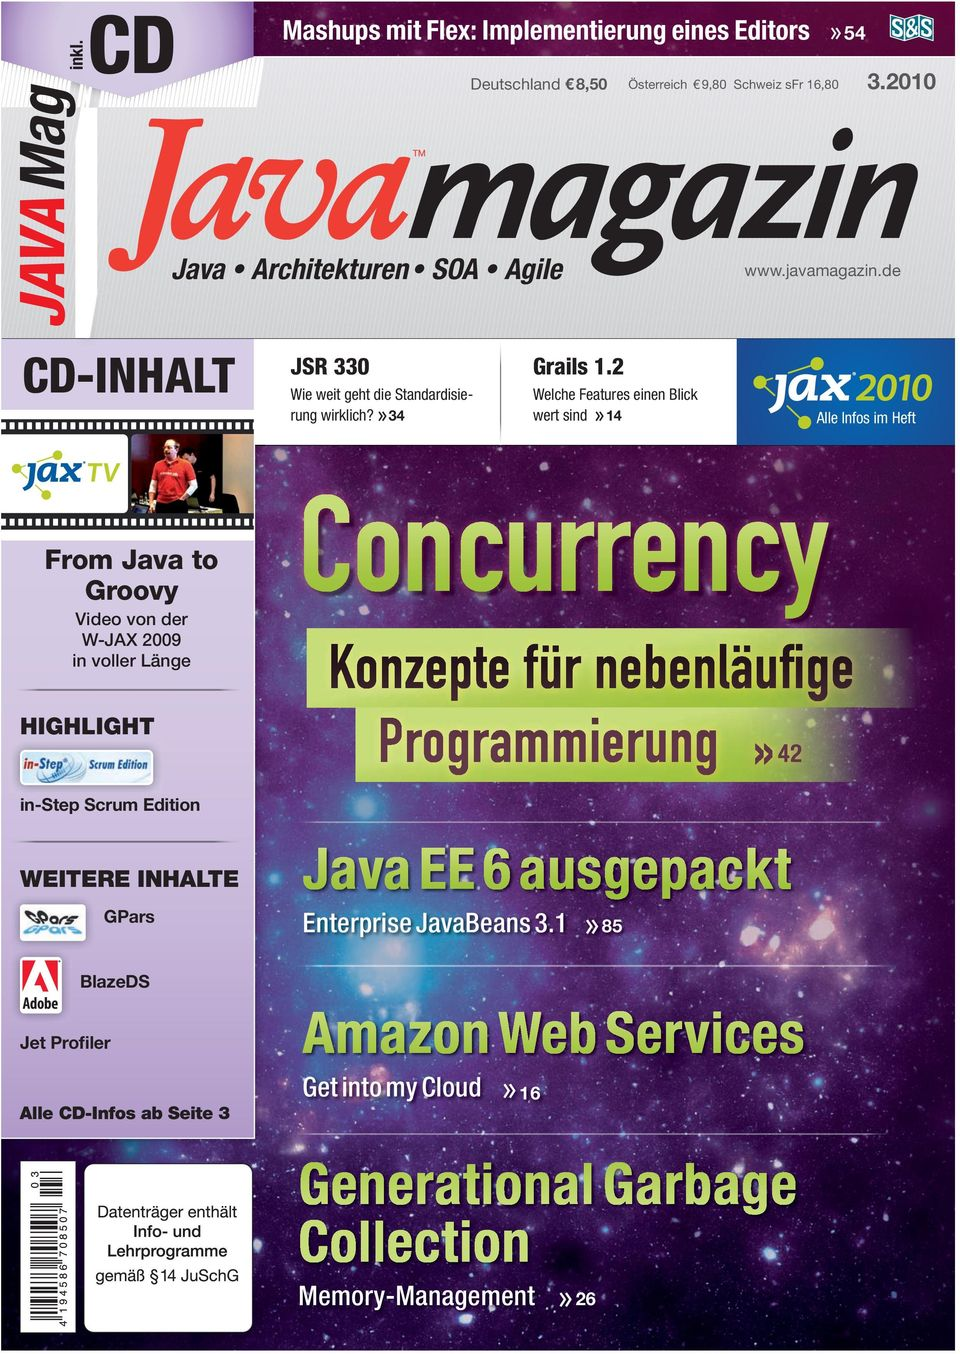 de Alle Infos im Heft From Java to Groovy Video von der W-JAX 2009 in voller Länge HIGHLIGHT Concurrency Konzepte für nebenläufi ge Programmierung» 42 in-step Scrum